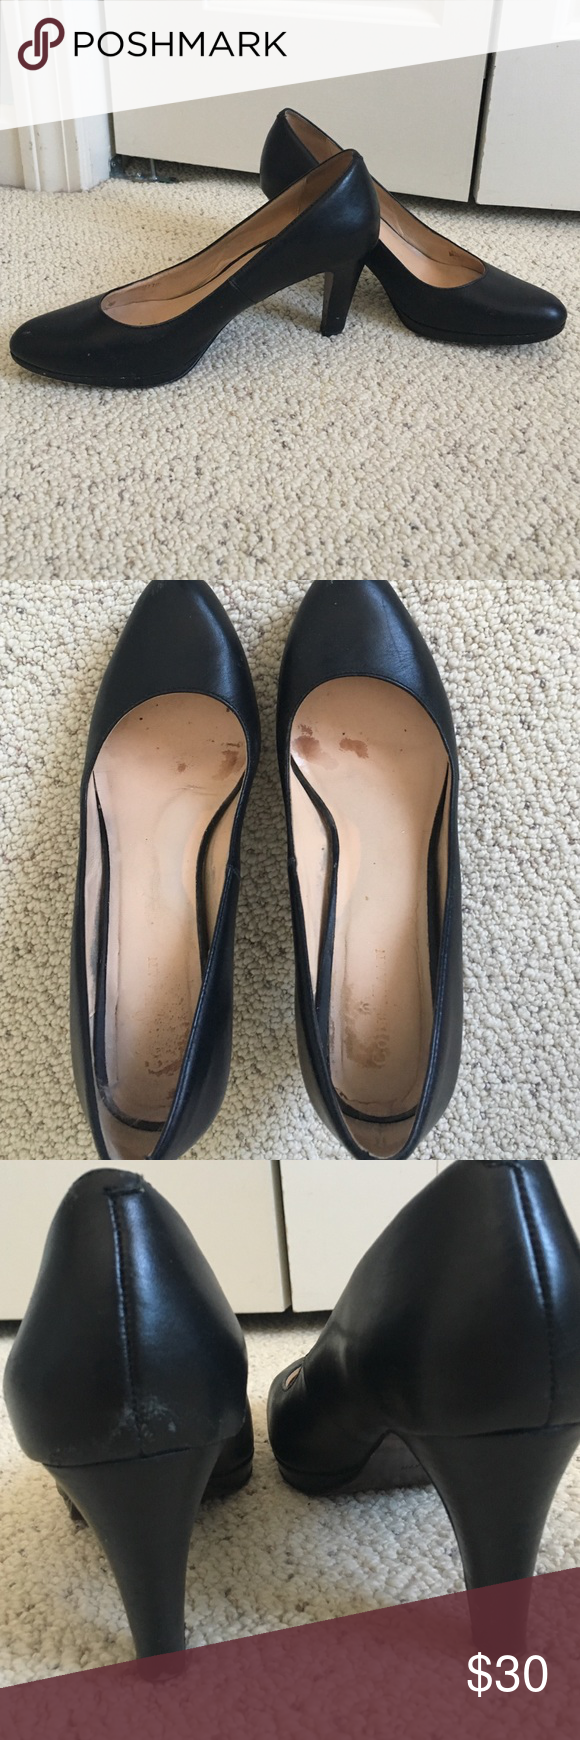 Black Cole Haan heels Gorgeous black Cole Haan heels. These are definitely an amazing wardrobe staple! A bit of wear on the inside (you can see that some fabric has worn off) and a few marks on the outside (shown in photos). It's barely noticeable when you're actually wearing the shoes. In good condition, and they're perfect for work or special occasions! Cole Haan Shoes Heels